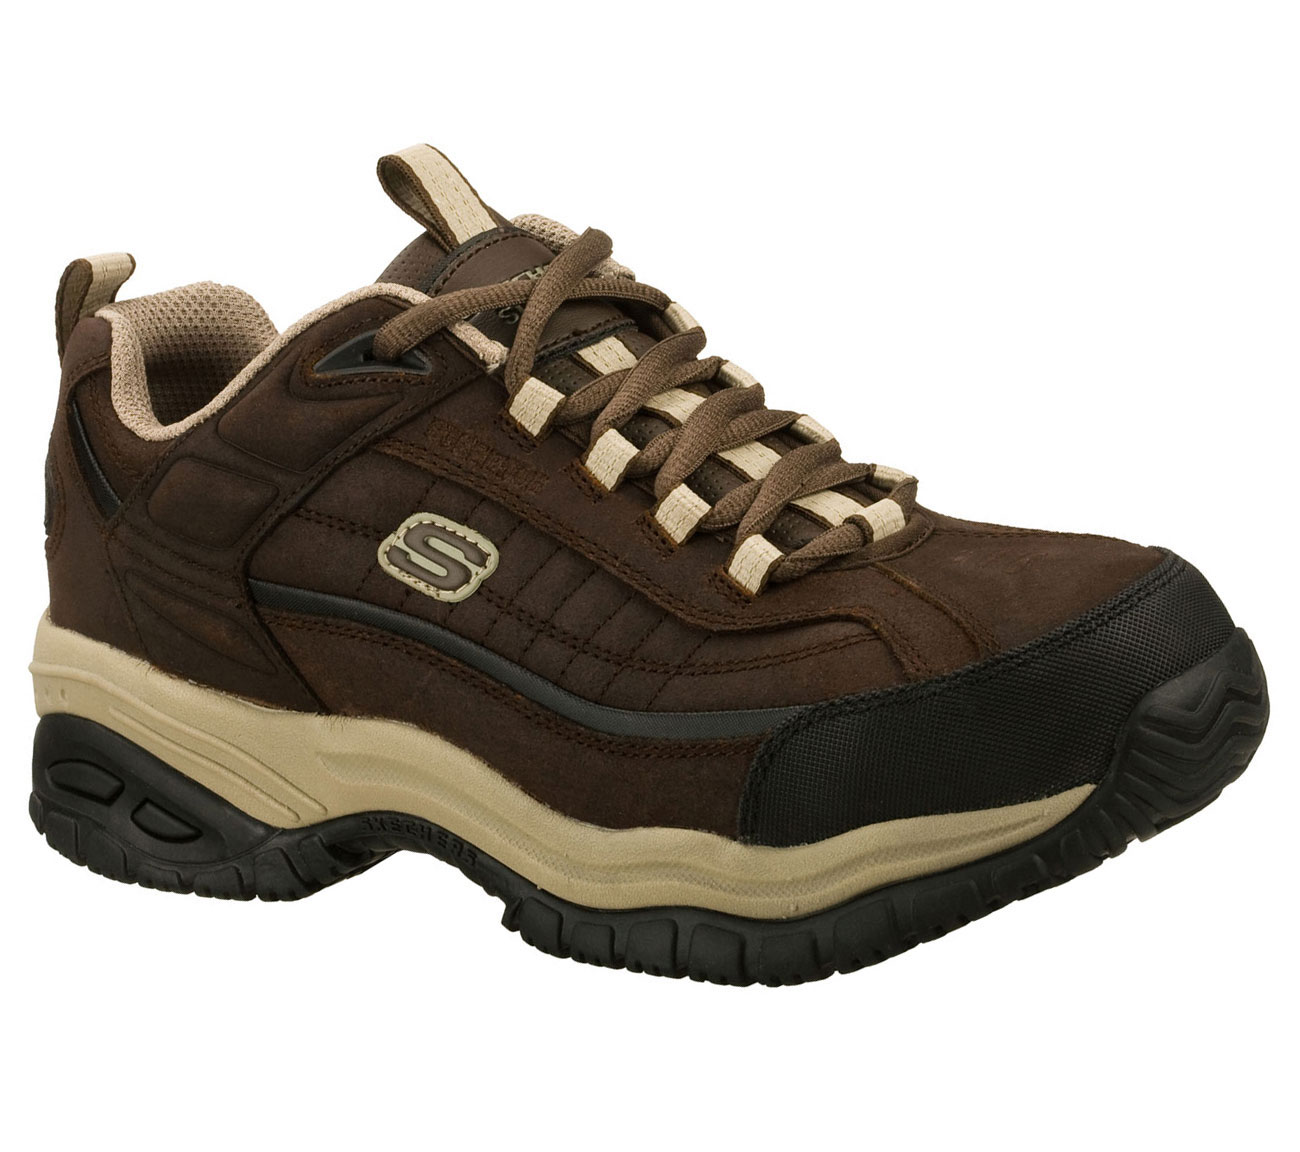 Skechers Shoes Skechers is an award-winning worldwide leader in the lifestyle footwear industry. The company designs, develops and markets shoes that appeal to trend savvy men, .